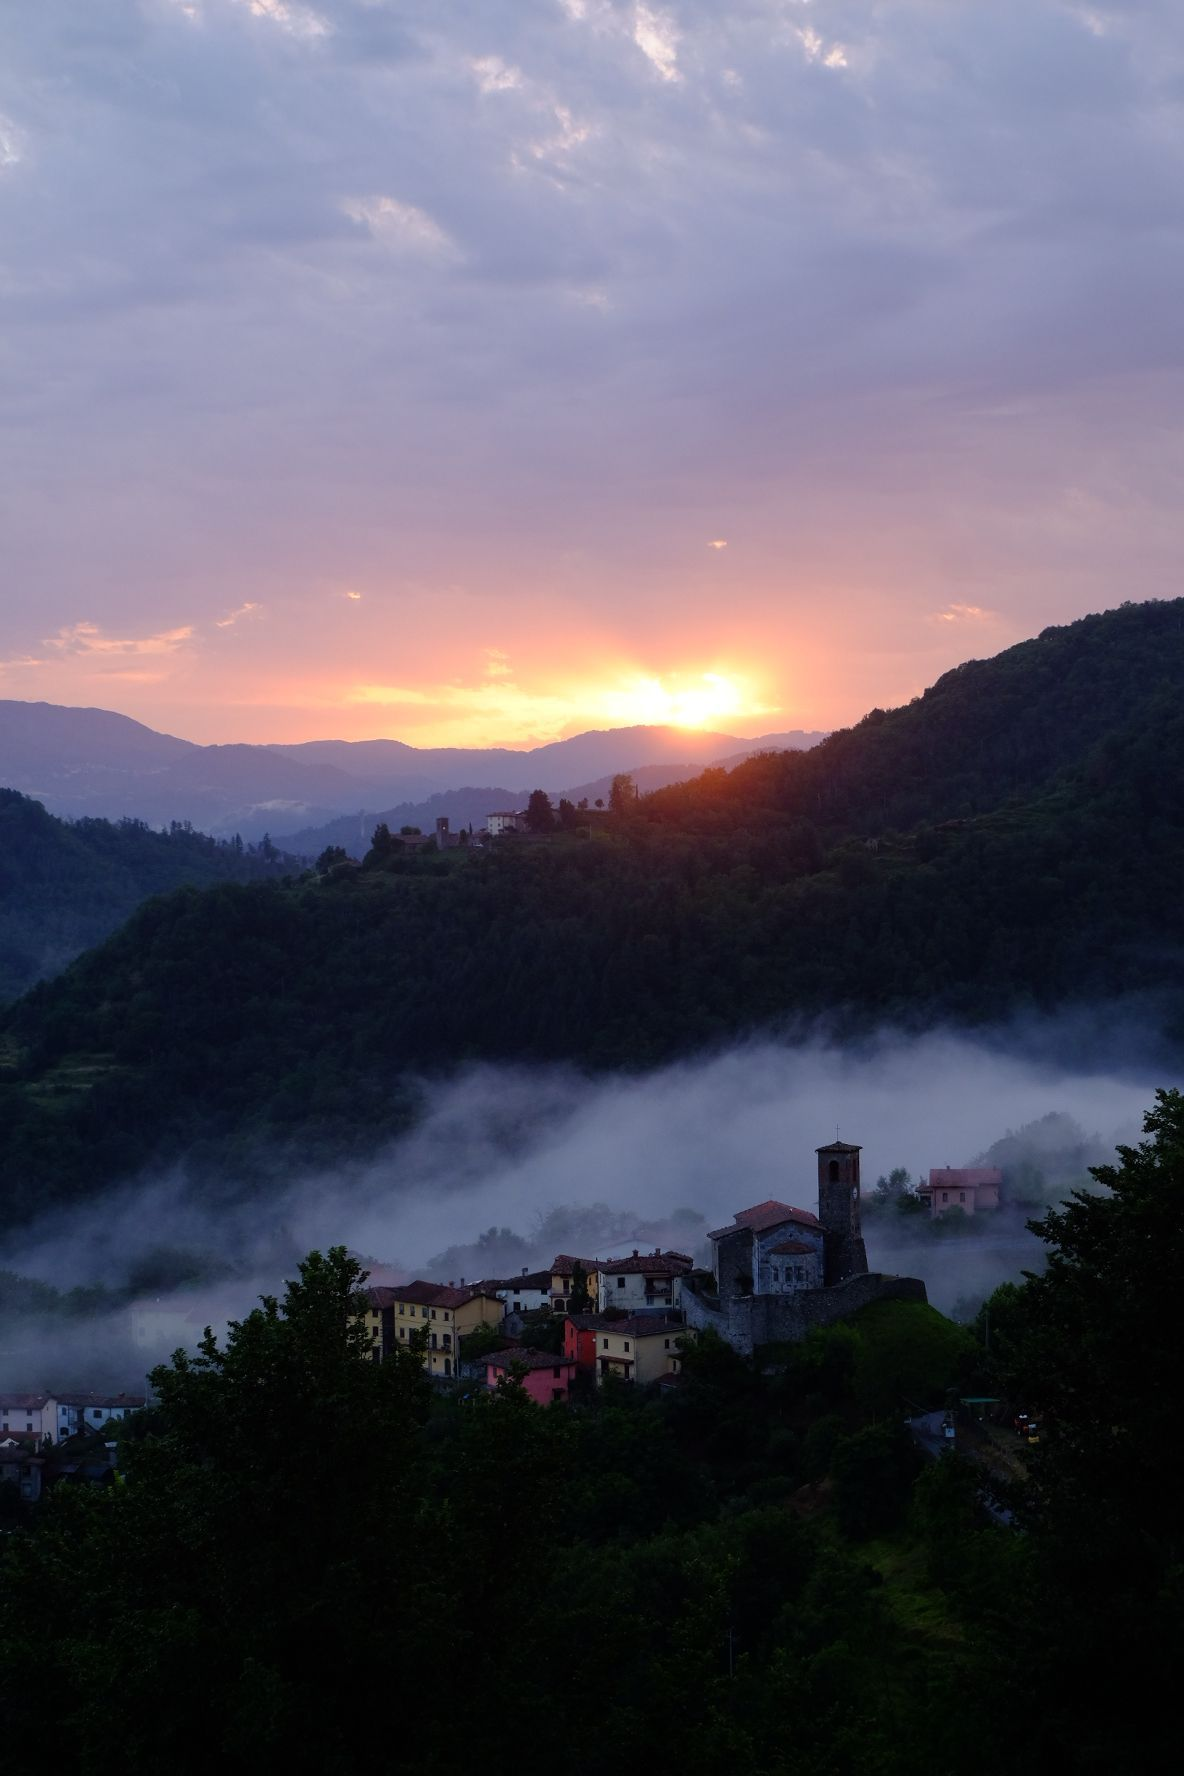 Sunsetting on small hilltop village in Northern Tuscany